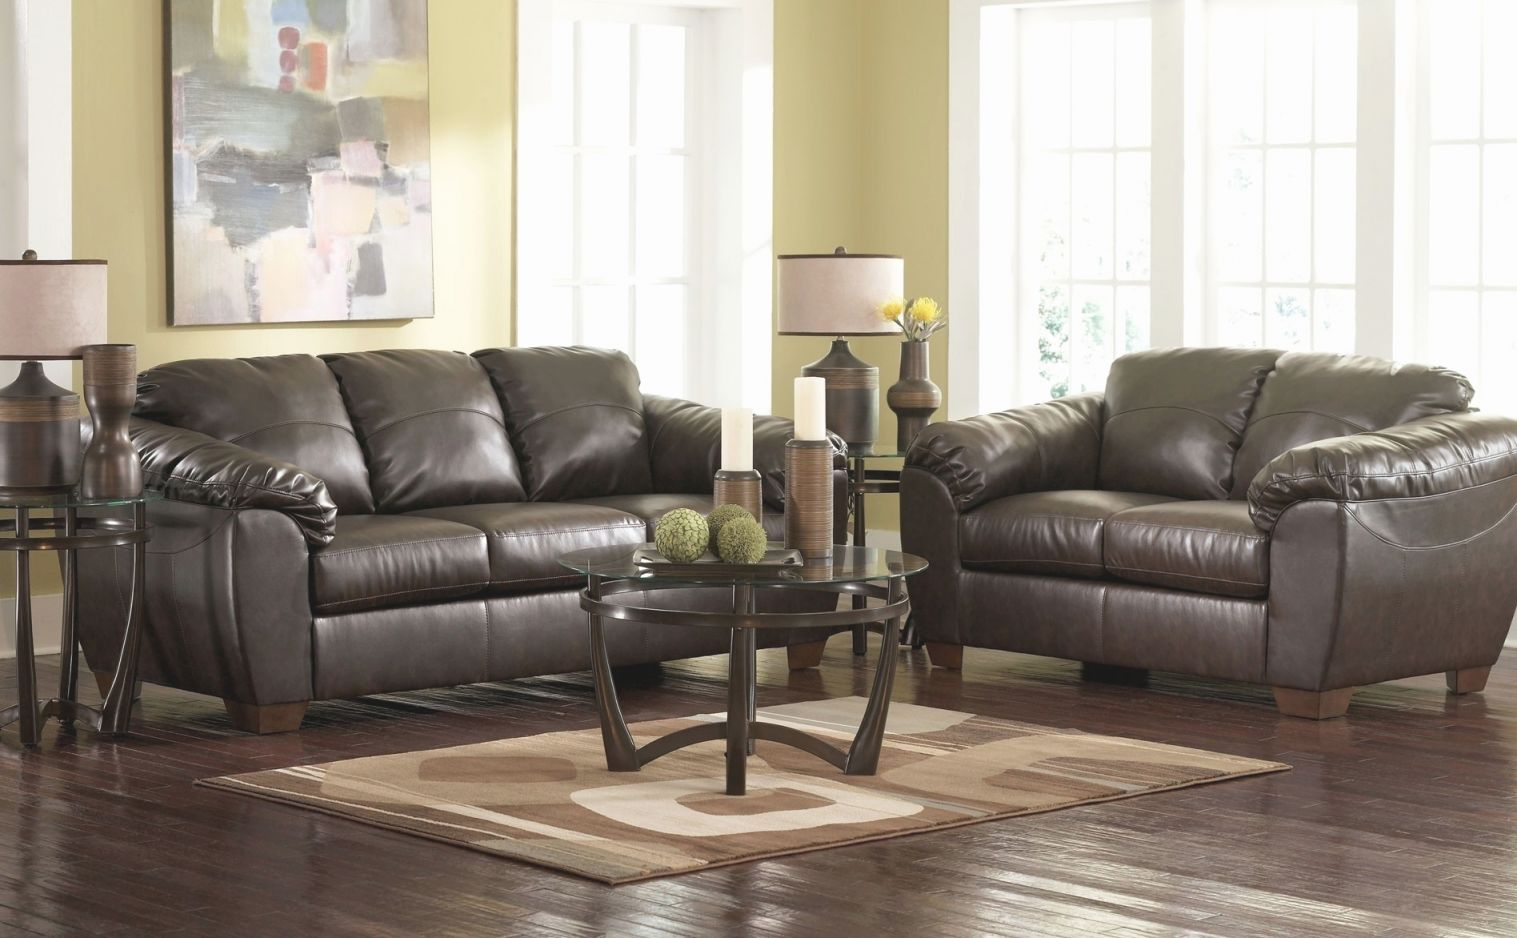 2019 Latest Sears Sofas pertaining to Sears Living Room Furniture